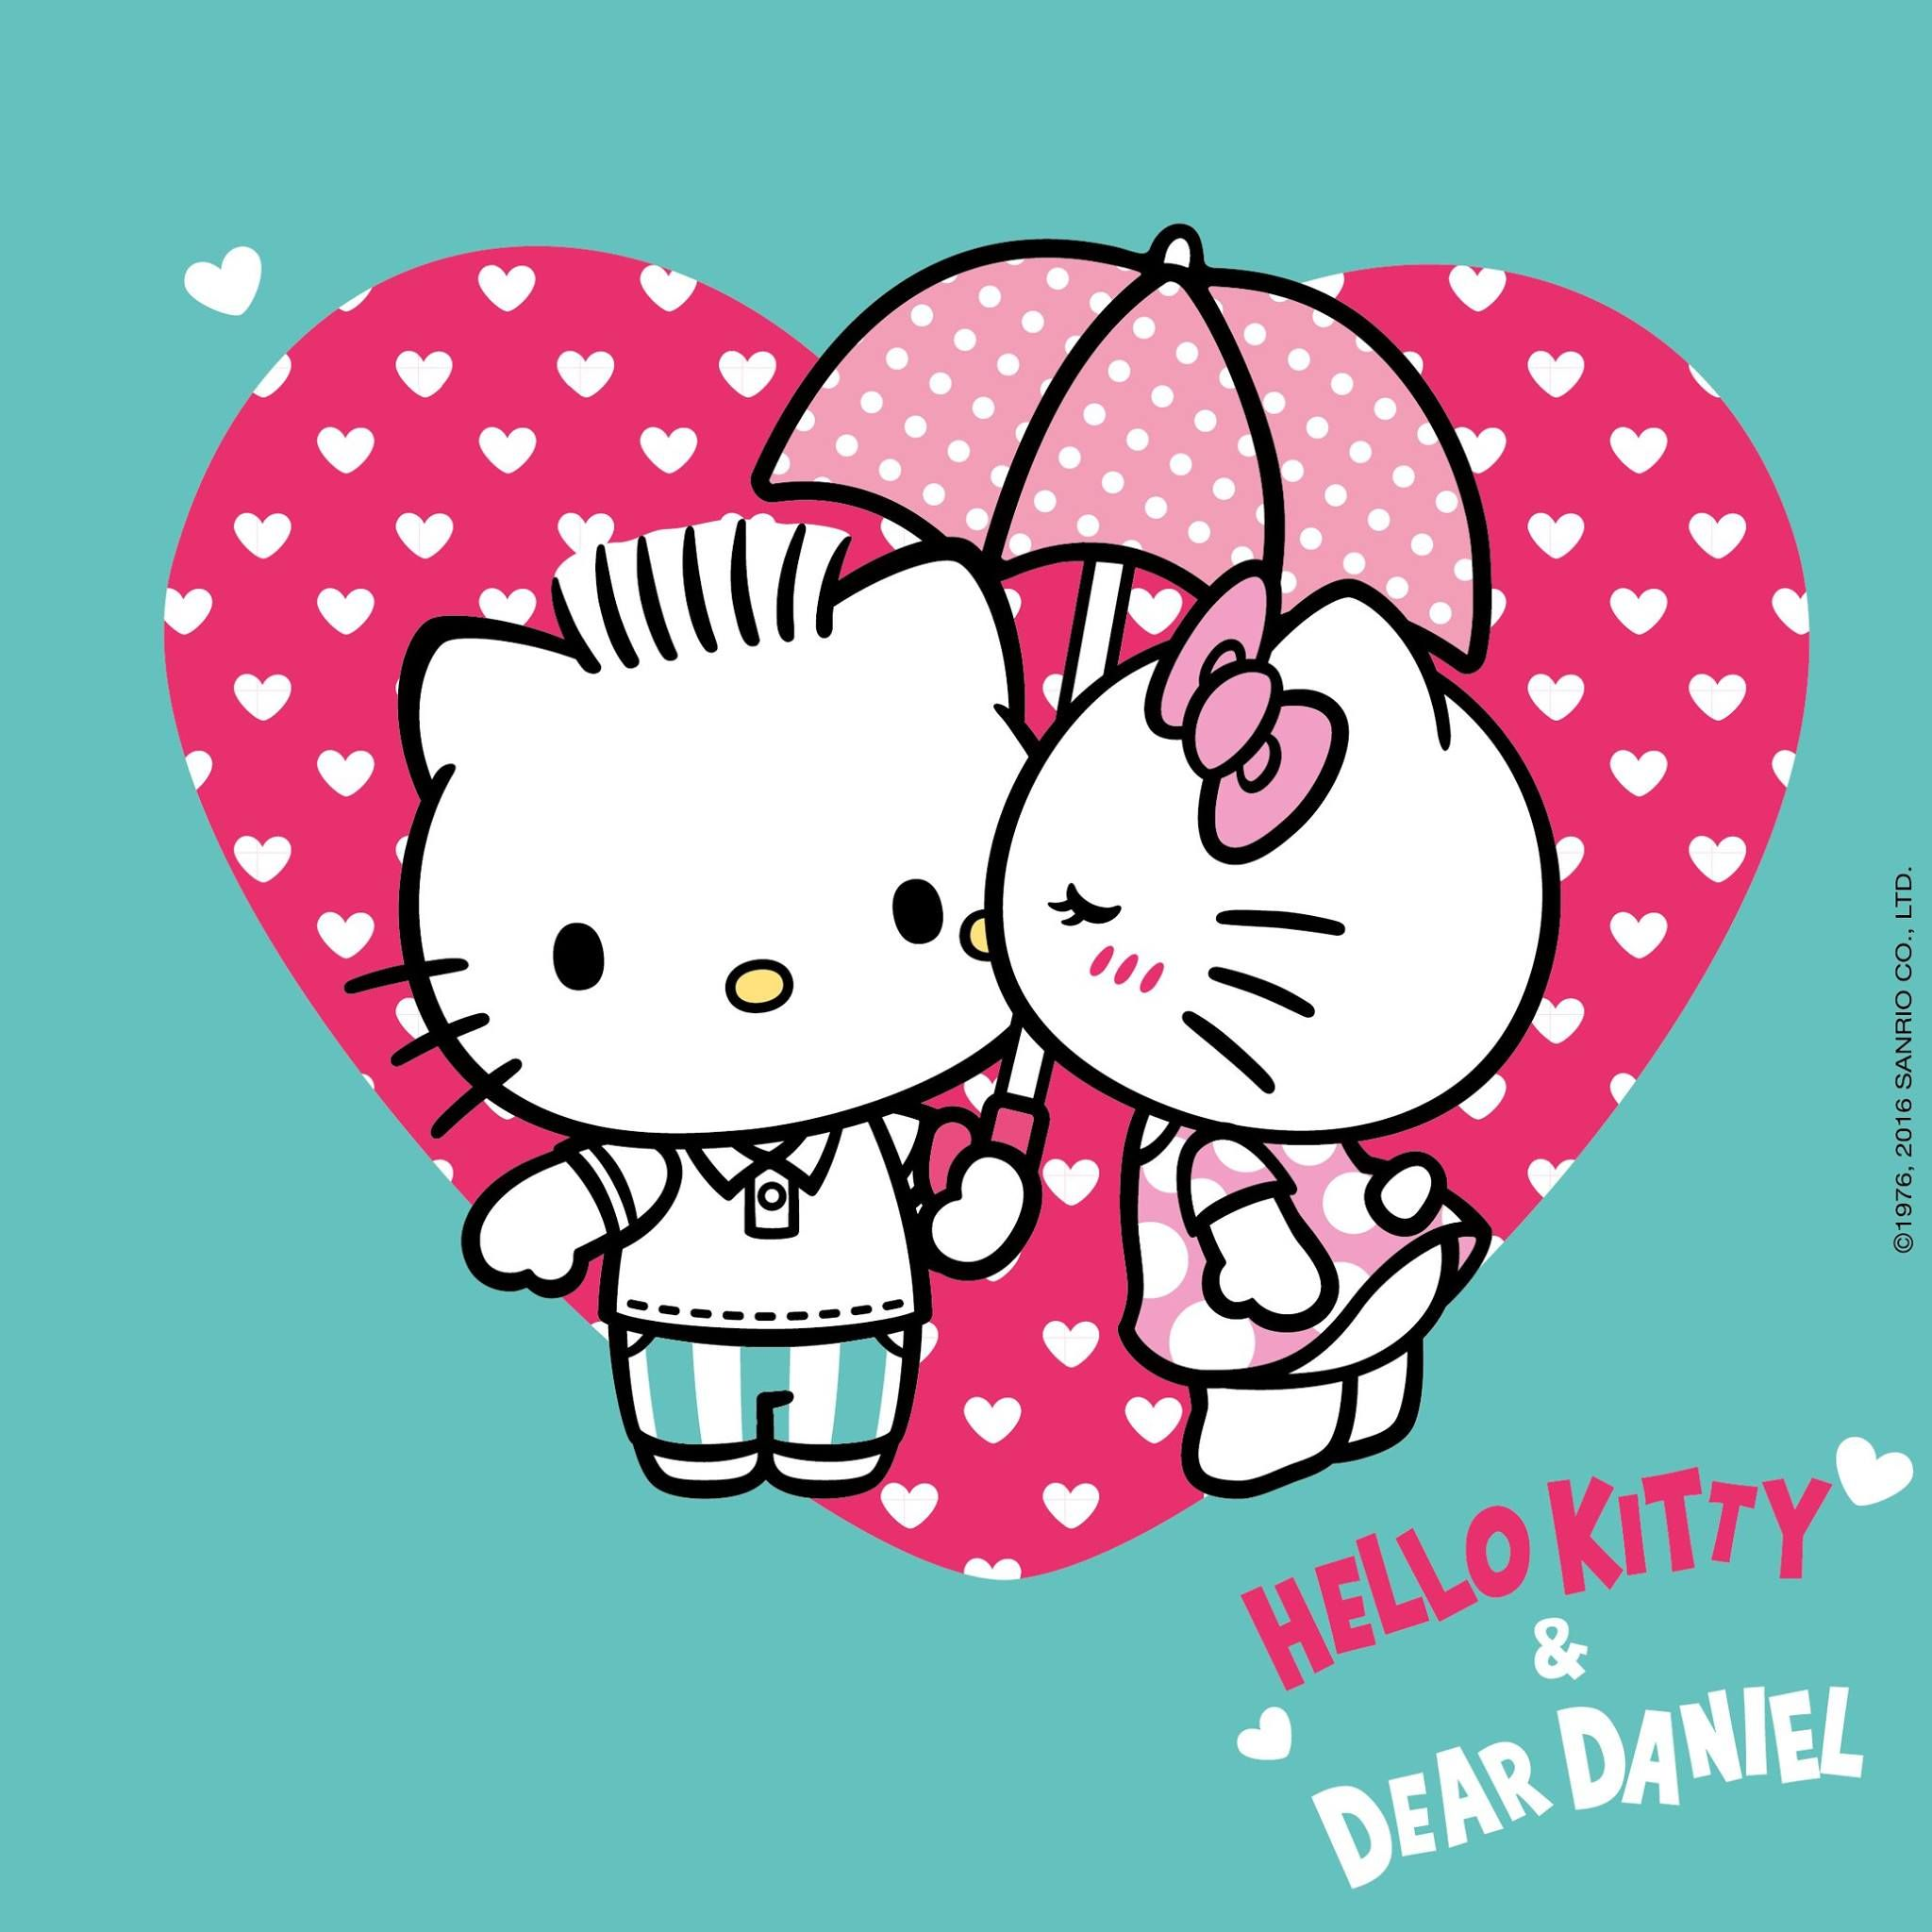 Good Wallpaper Hello Kitty Love - 8b9fc3fa44896ac78765f245323ee8bb  You Should Have_711320.jpg